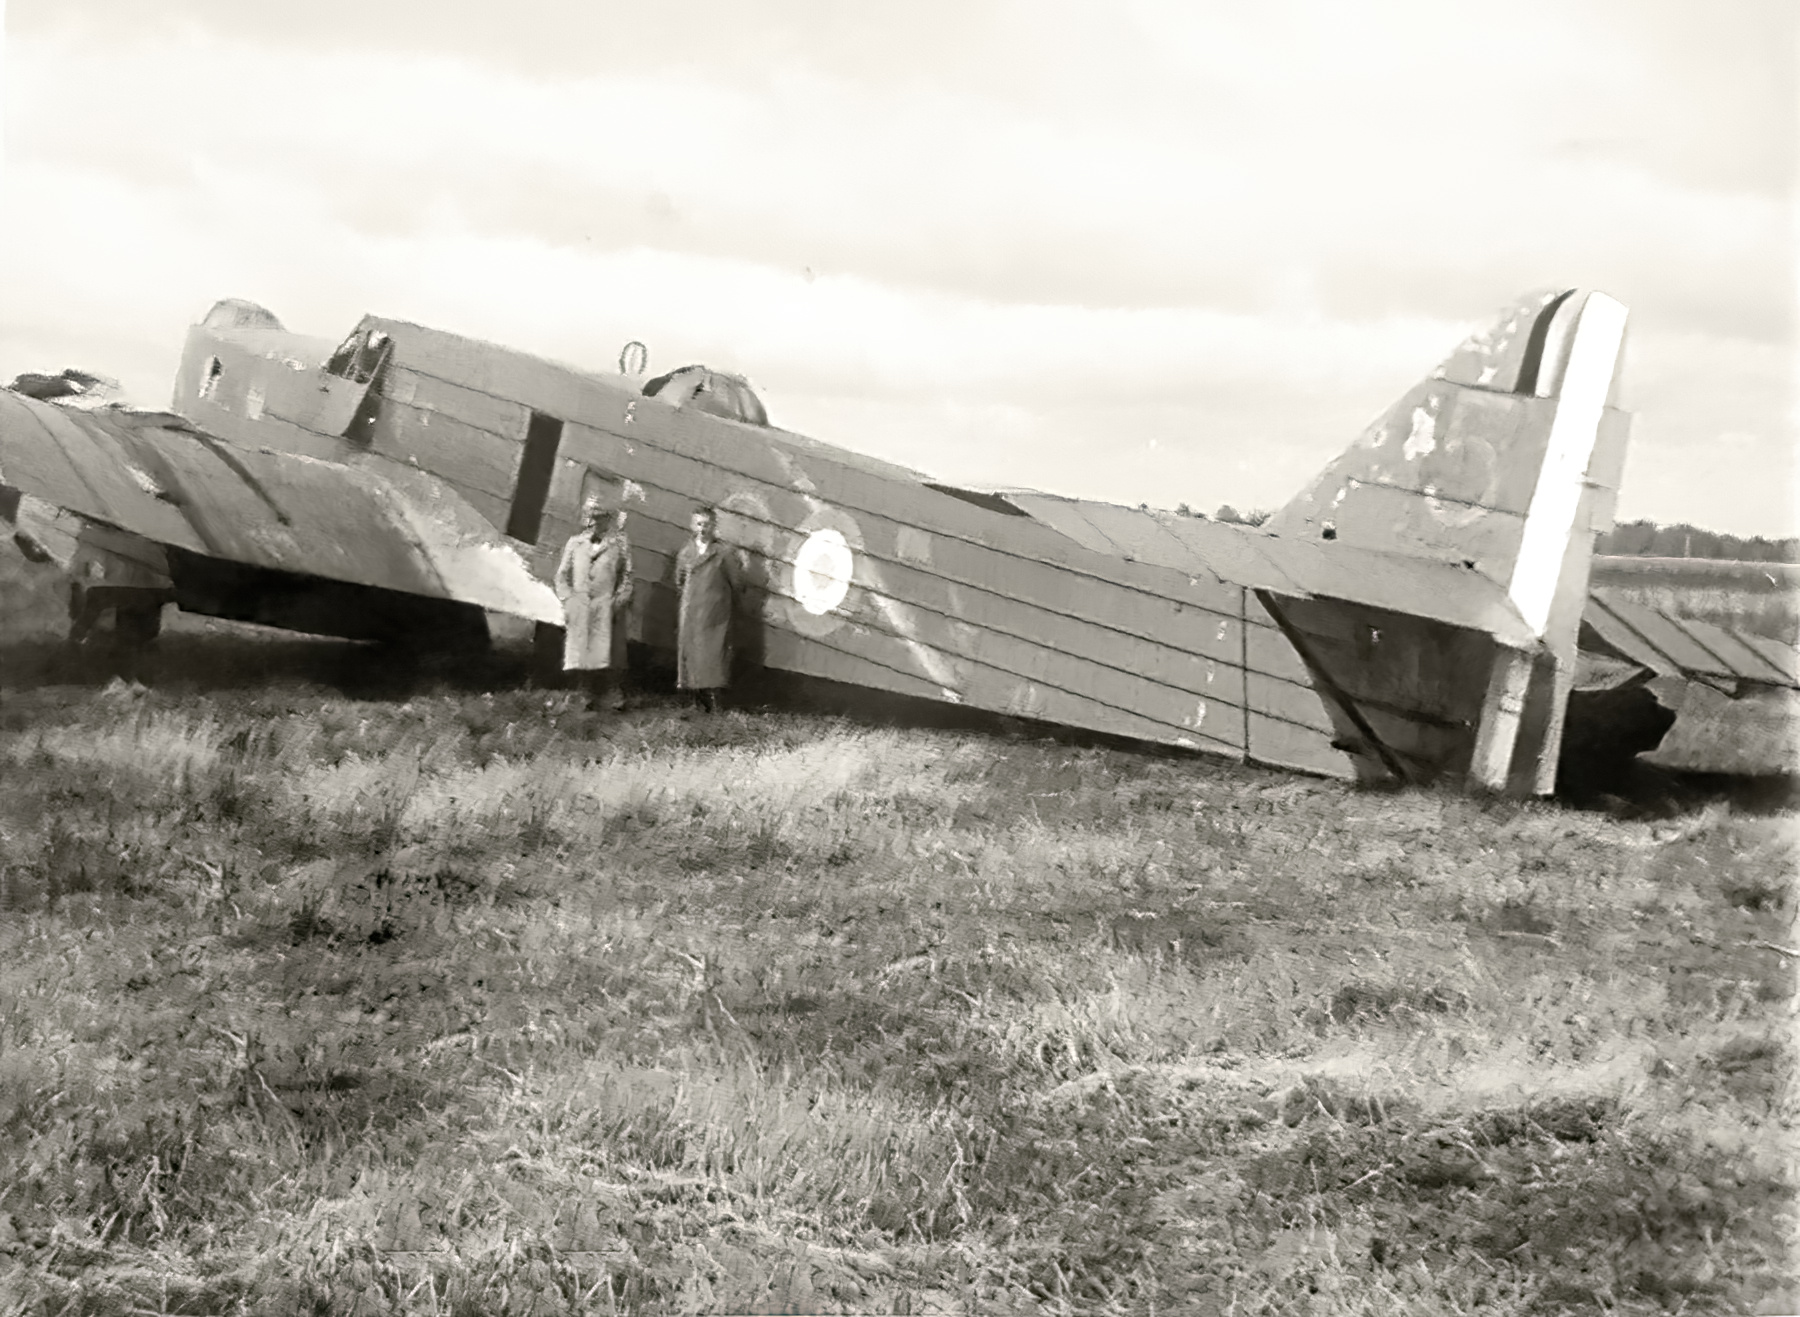 French Airforce Bloch MB 210 Blue 5 sits abandoned after the fall of France Jun 1940 ebay 01